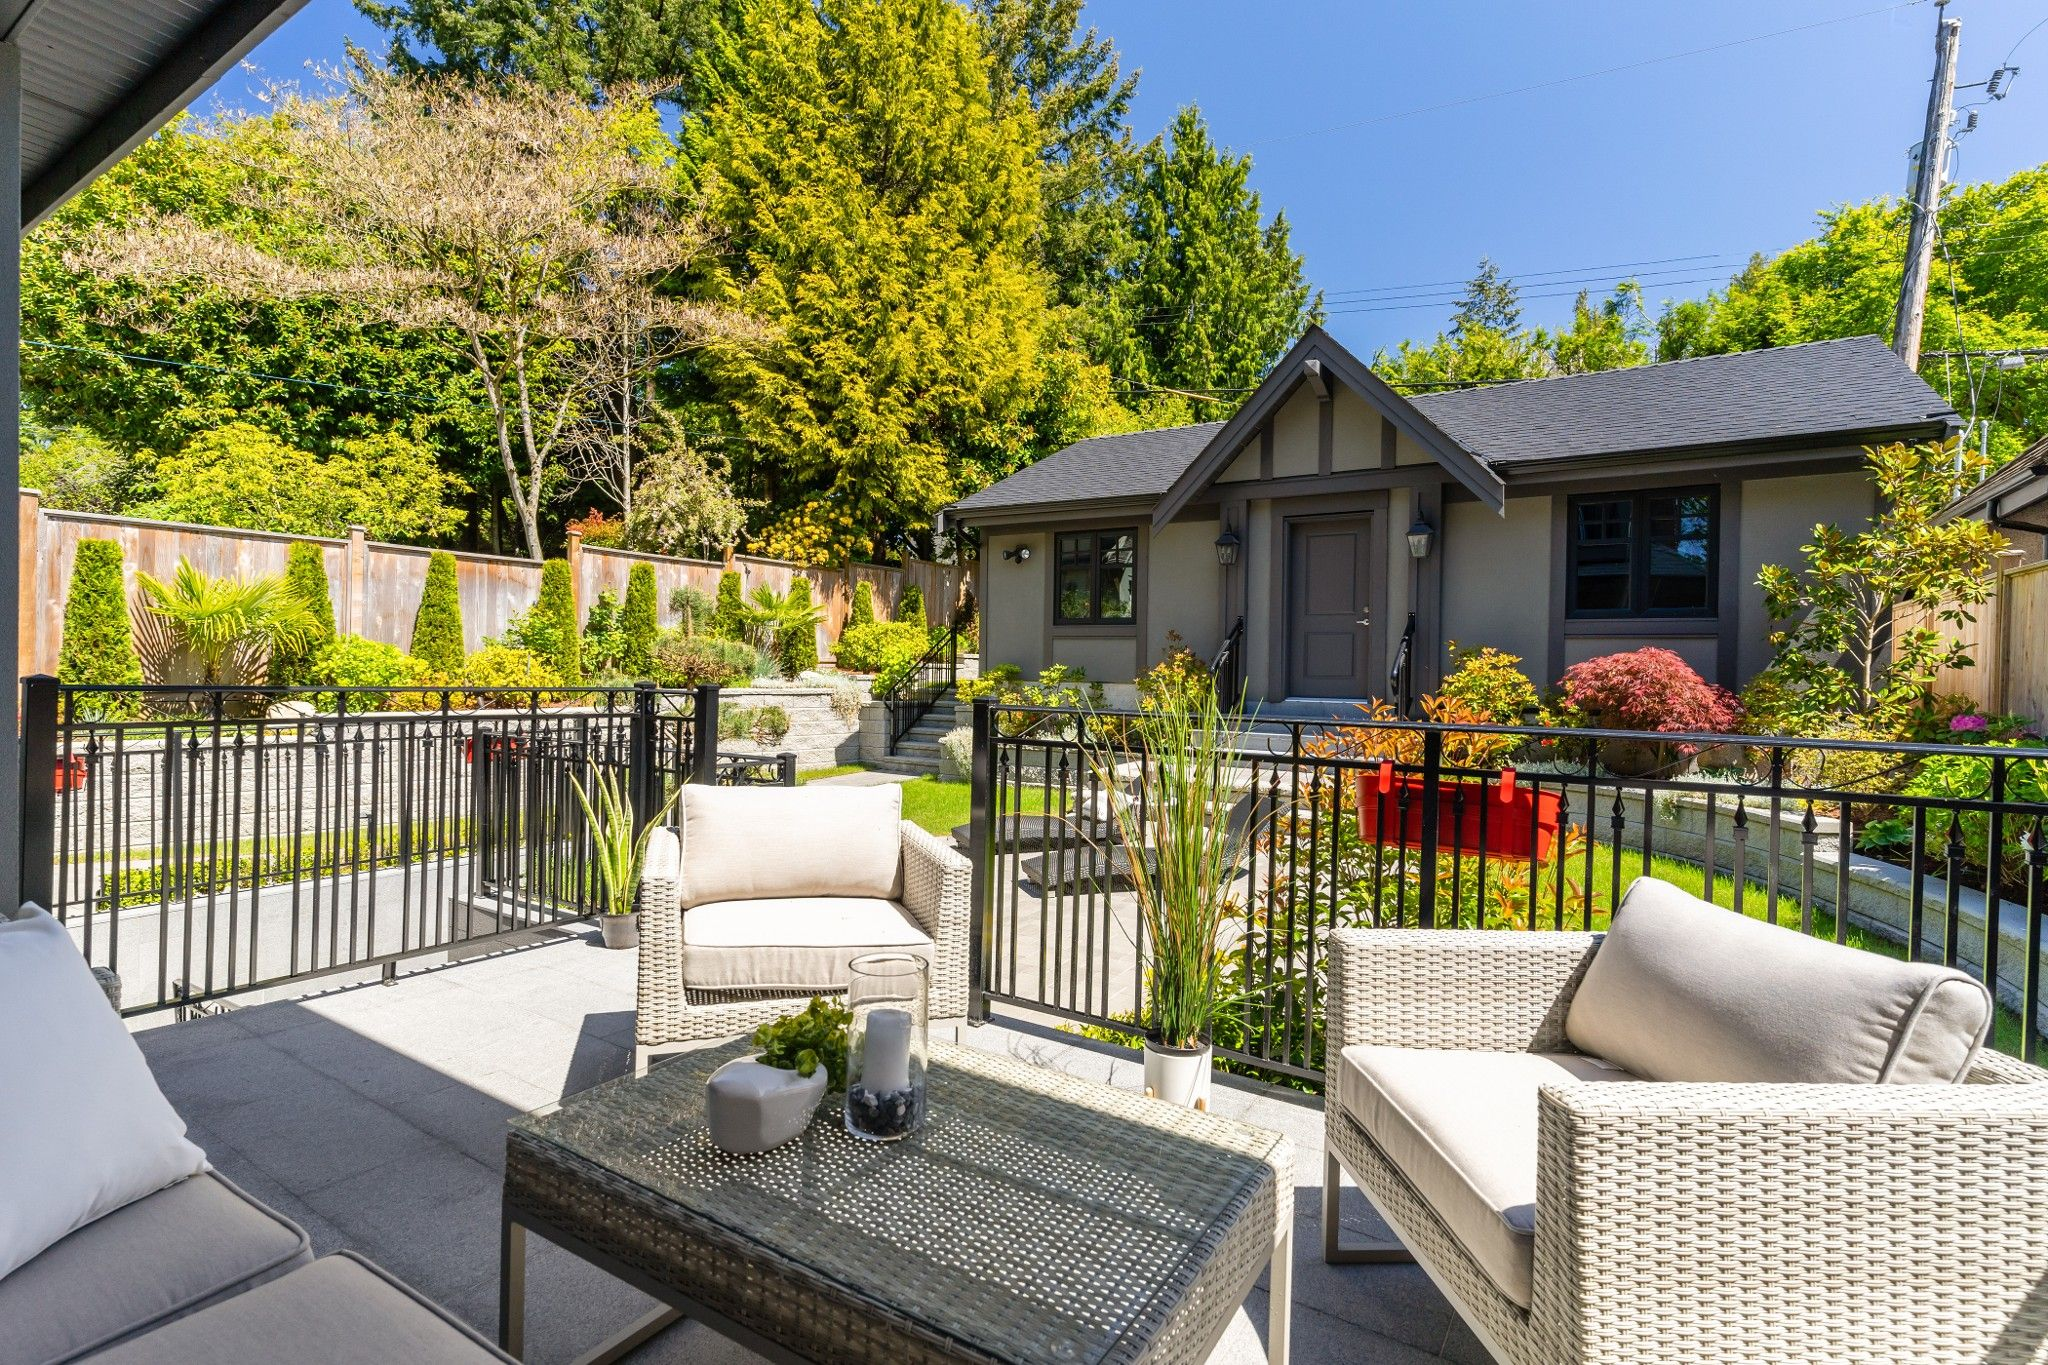 Photo 40: Photos: 5756 ALMA STREET in VANCOUVER: Southlands House for sale (Vancouver West)  : MLS®# R2588229